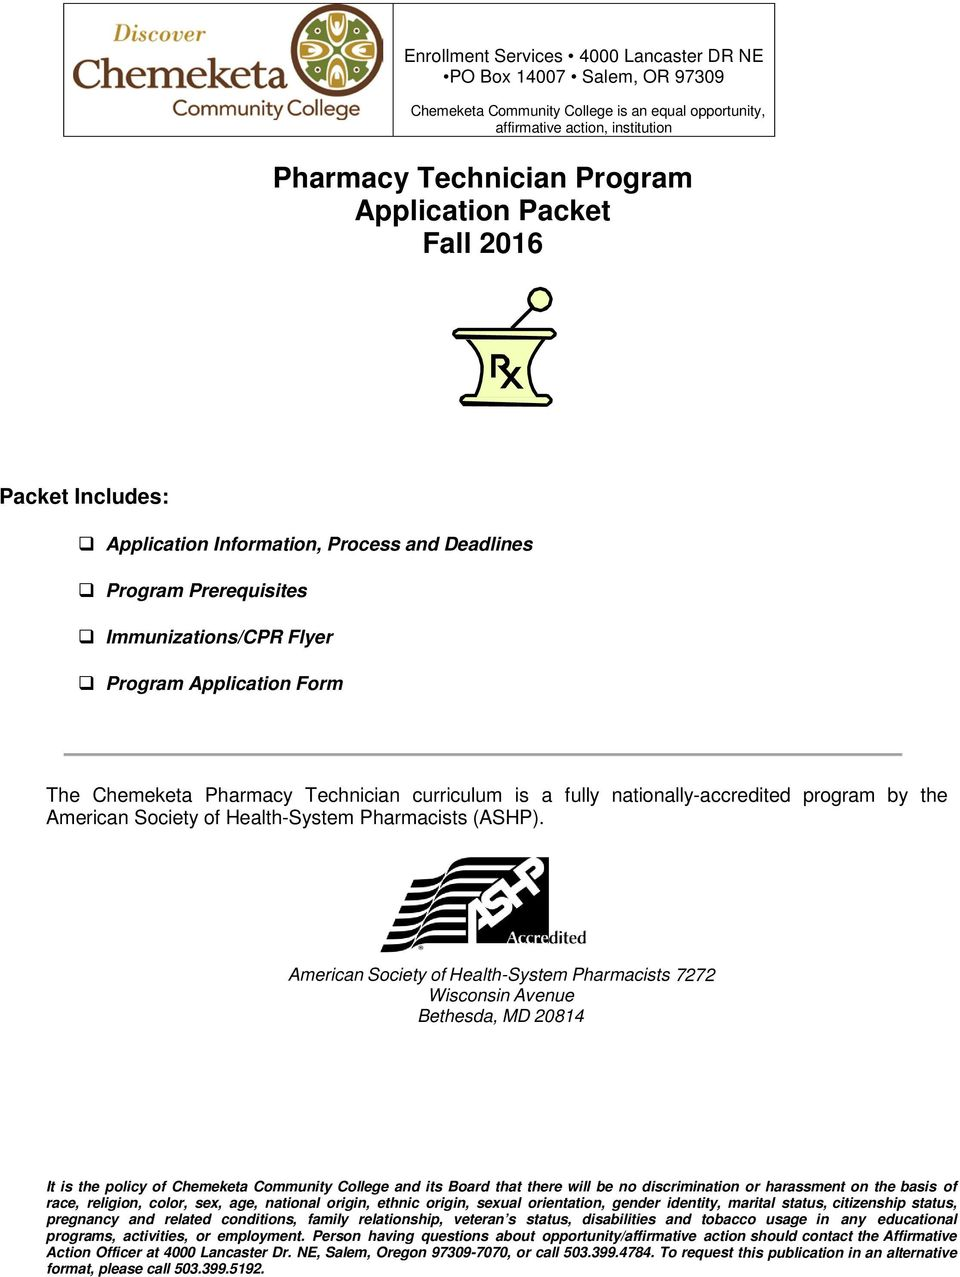 a fully nationally-accredited program by the American Society of Health-System Pharmacists (ASHP).